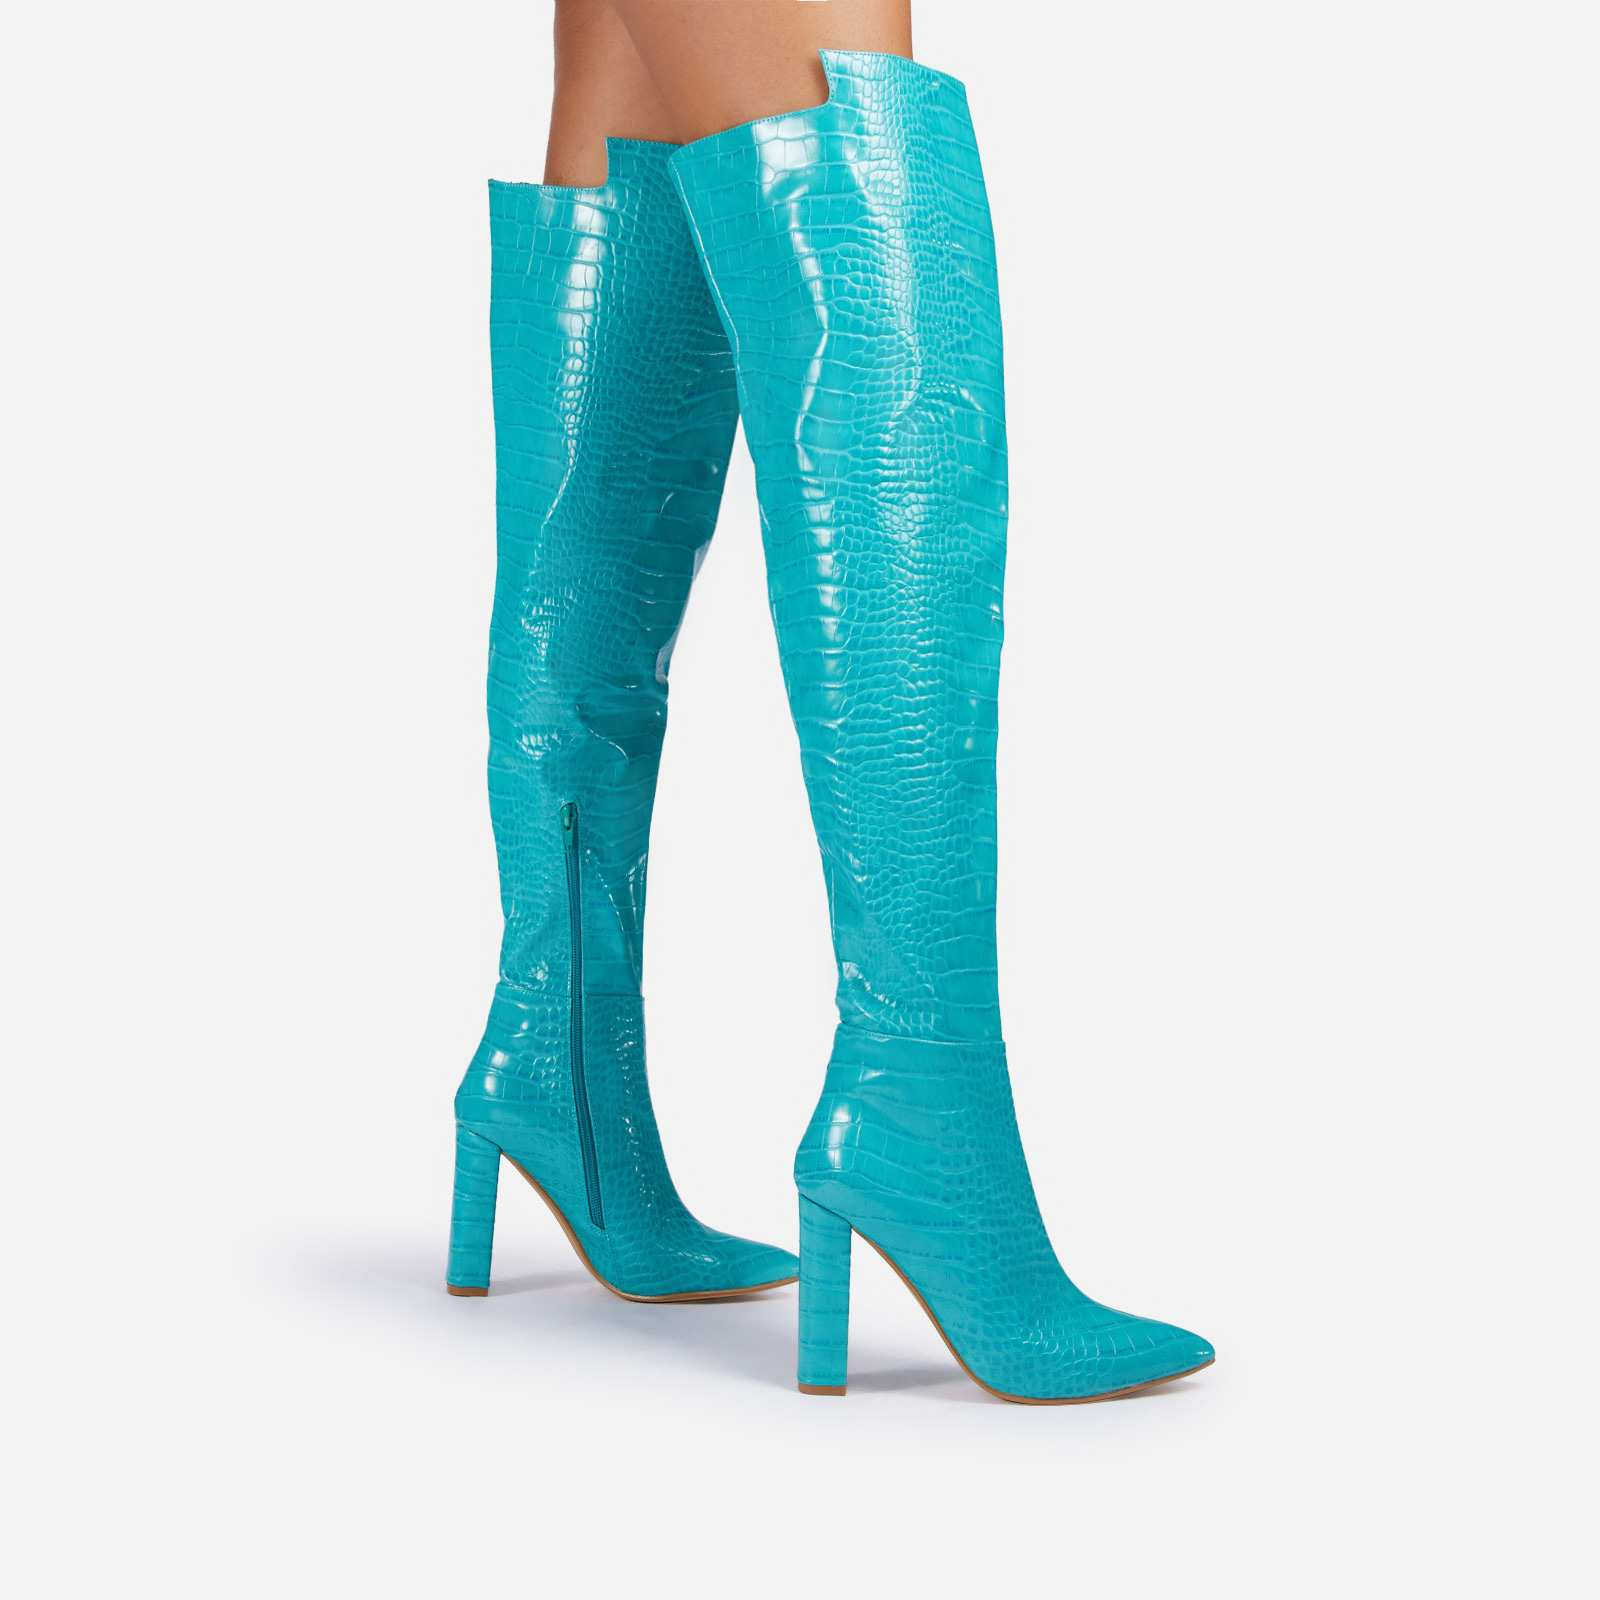 Visionary Block Heel Over The Knee Thigh High Long Boot In Turquoise Blue Croc Print Patent